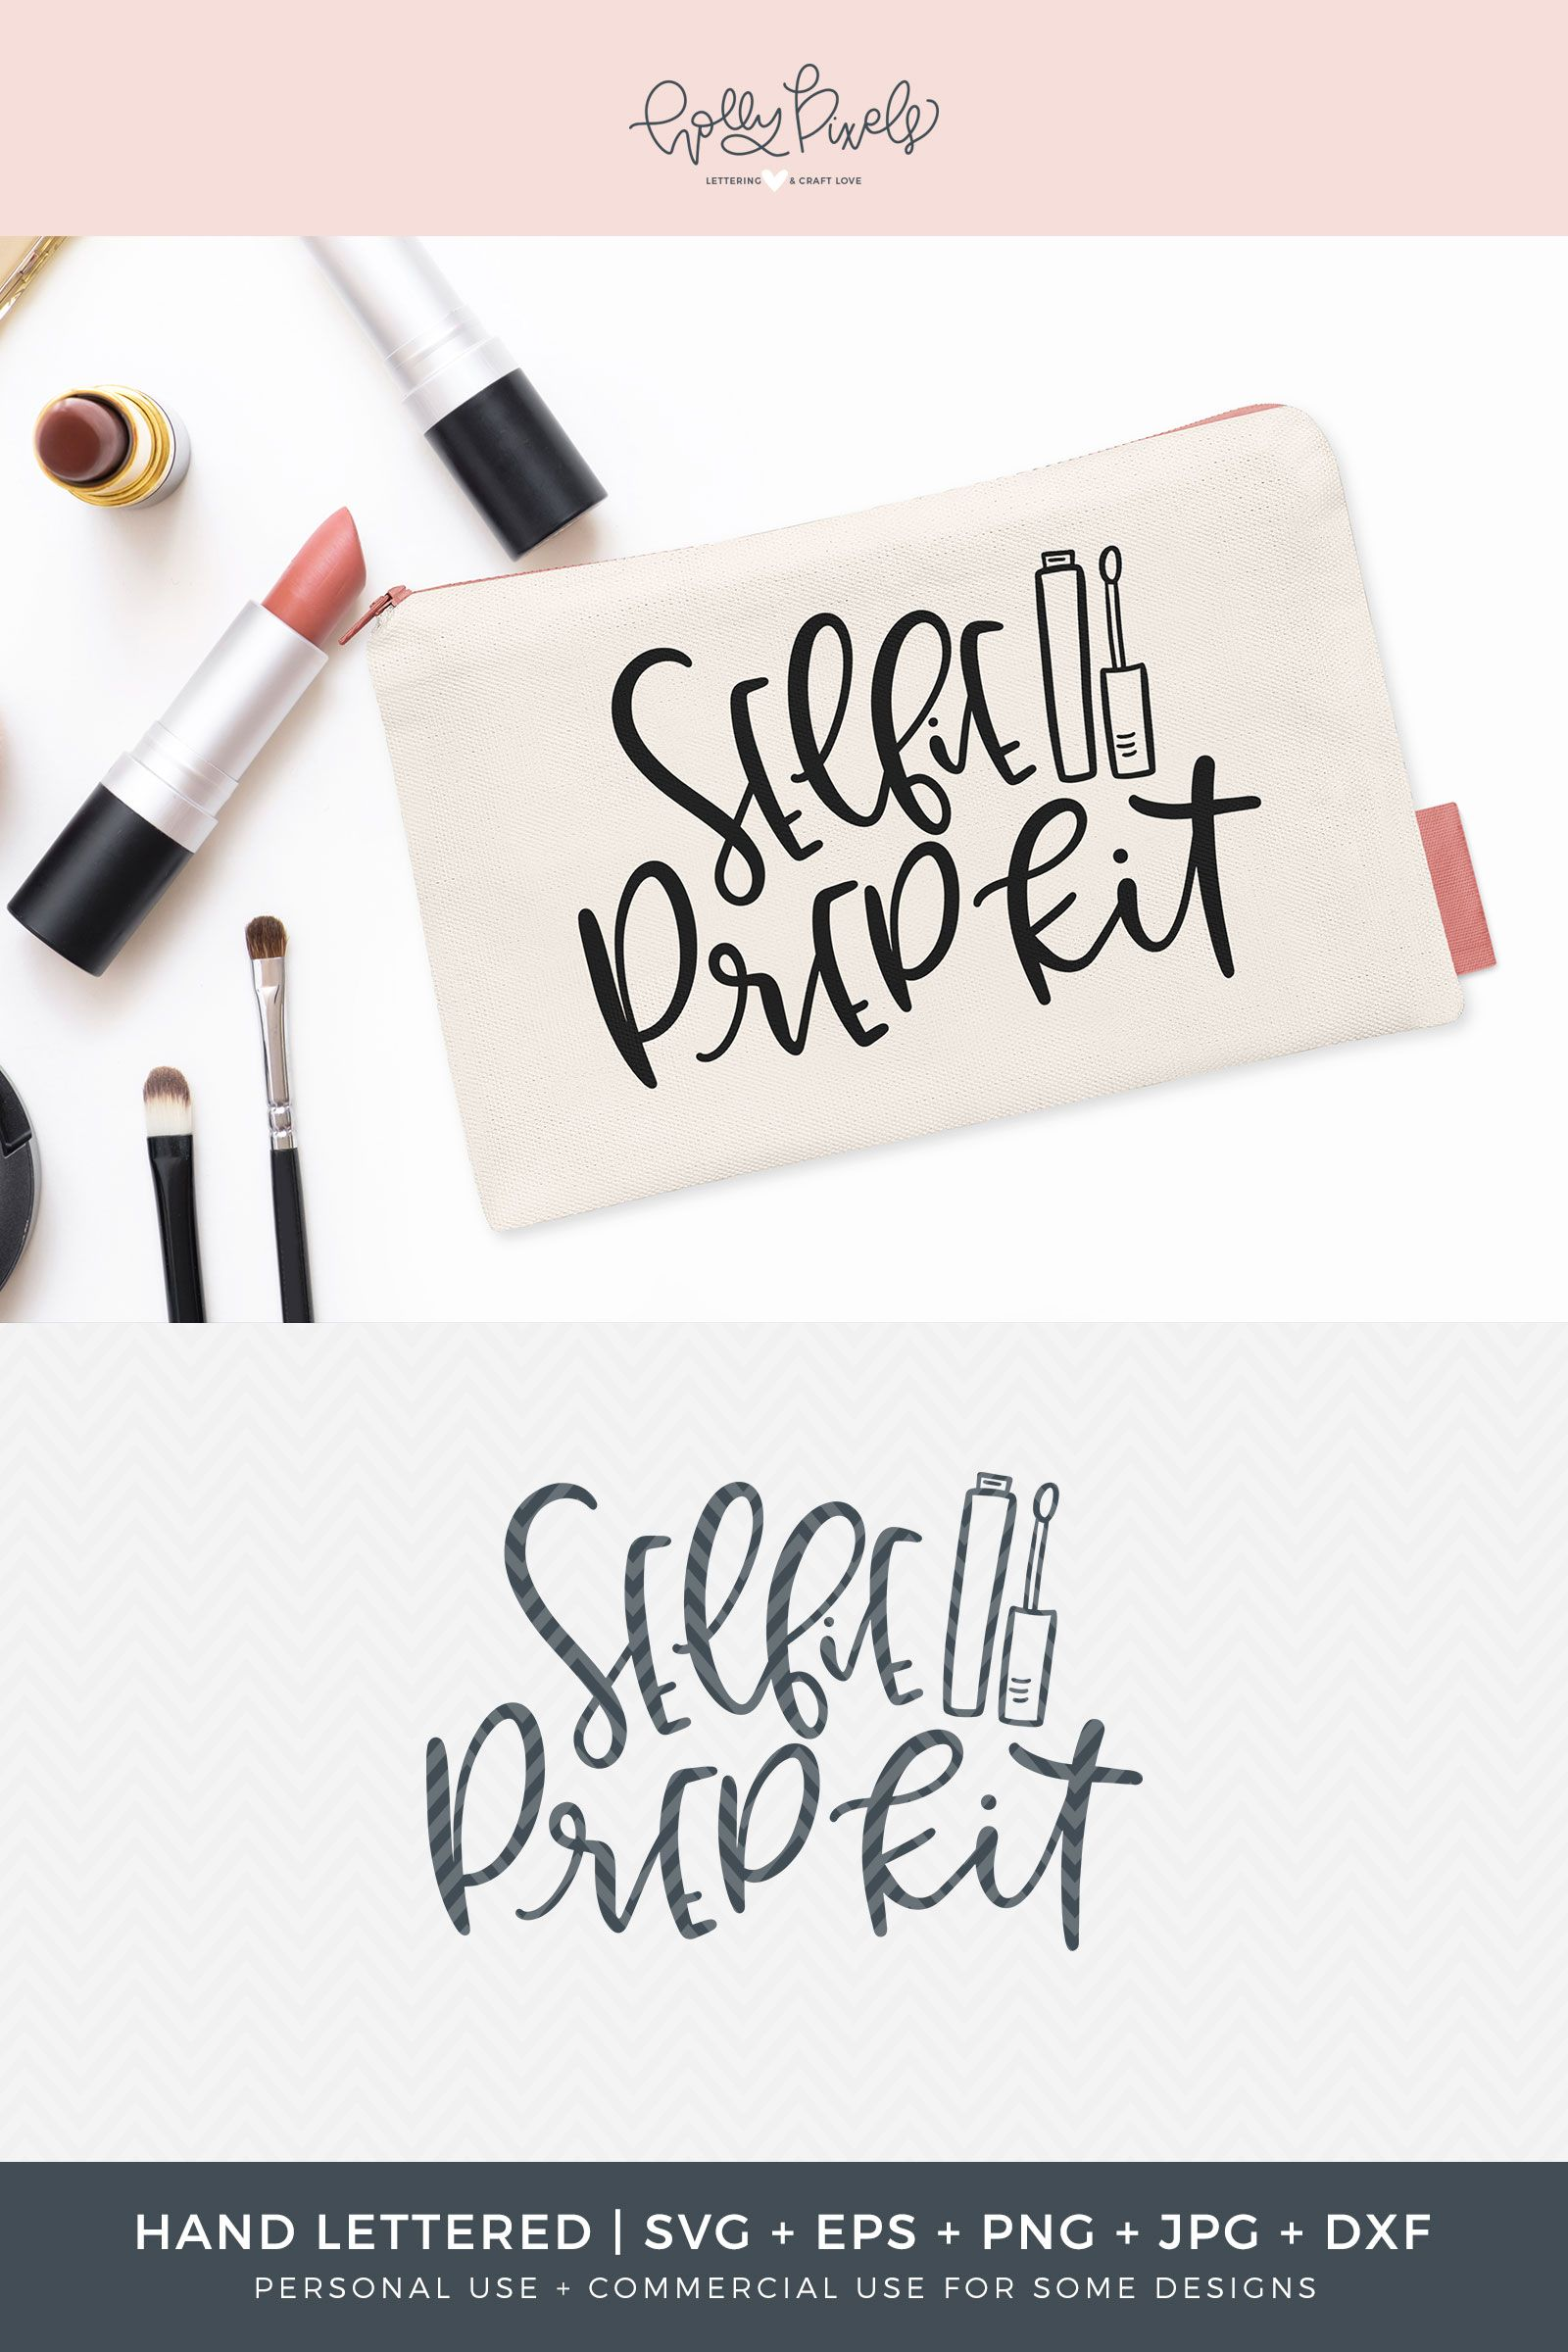 The perfect Selfie Prep Kit starts with a cute SVG design